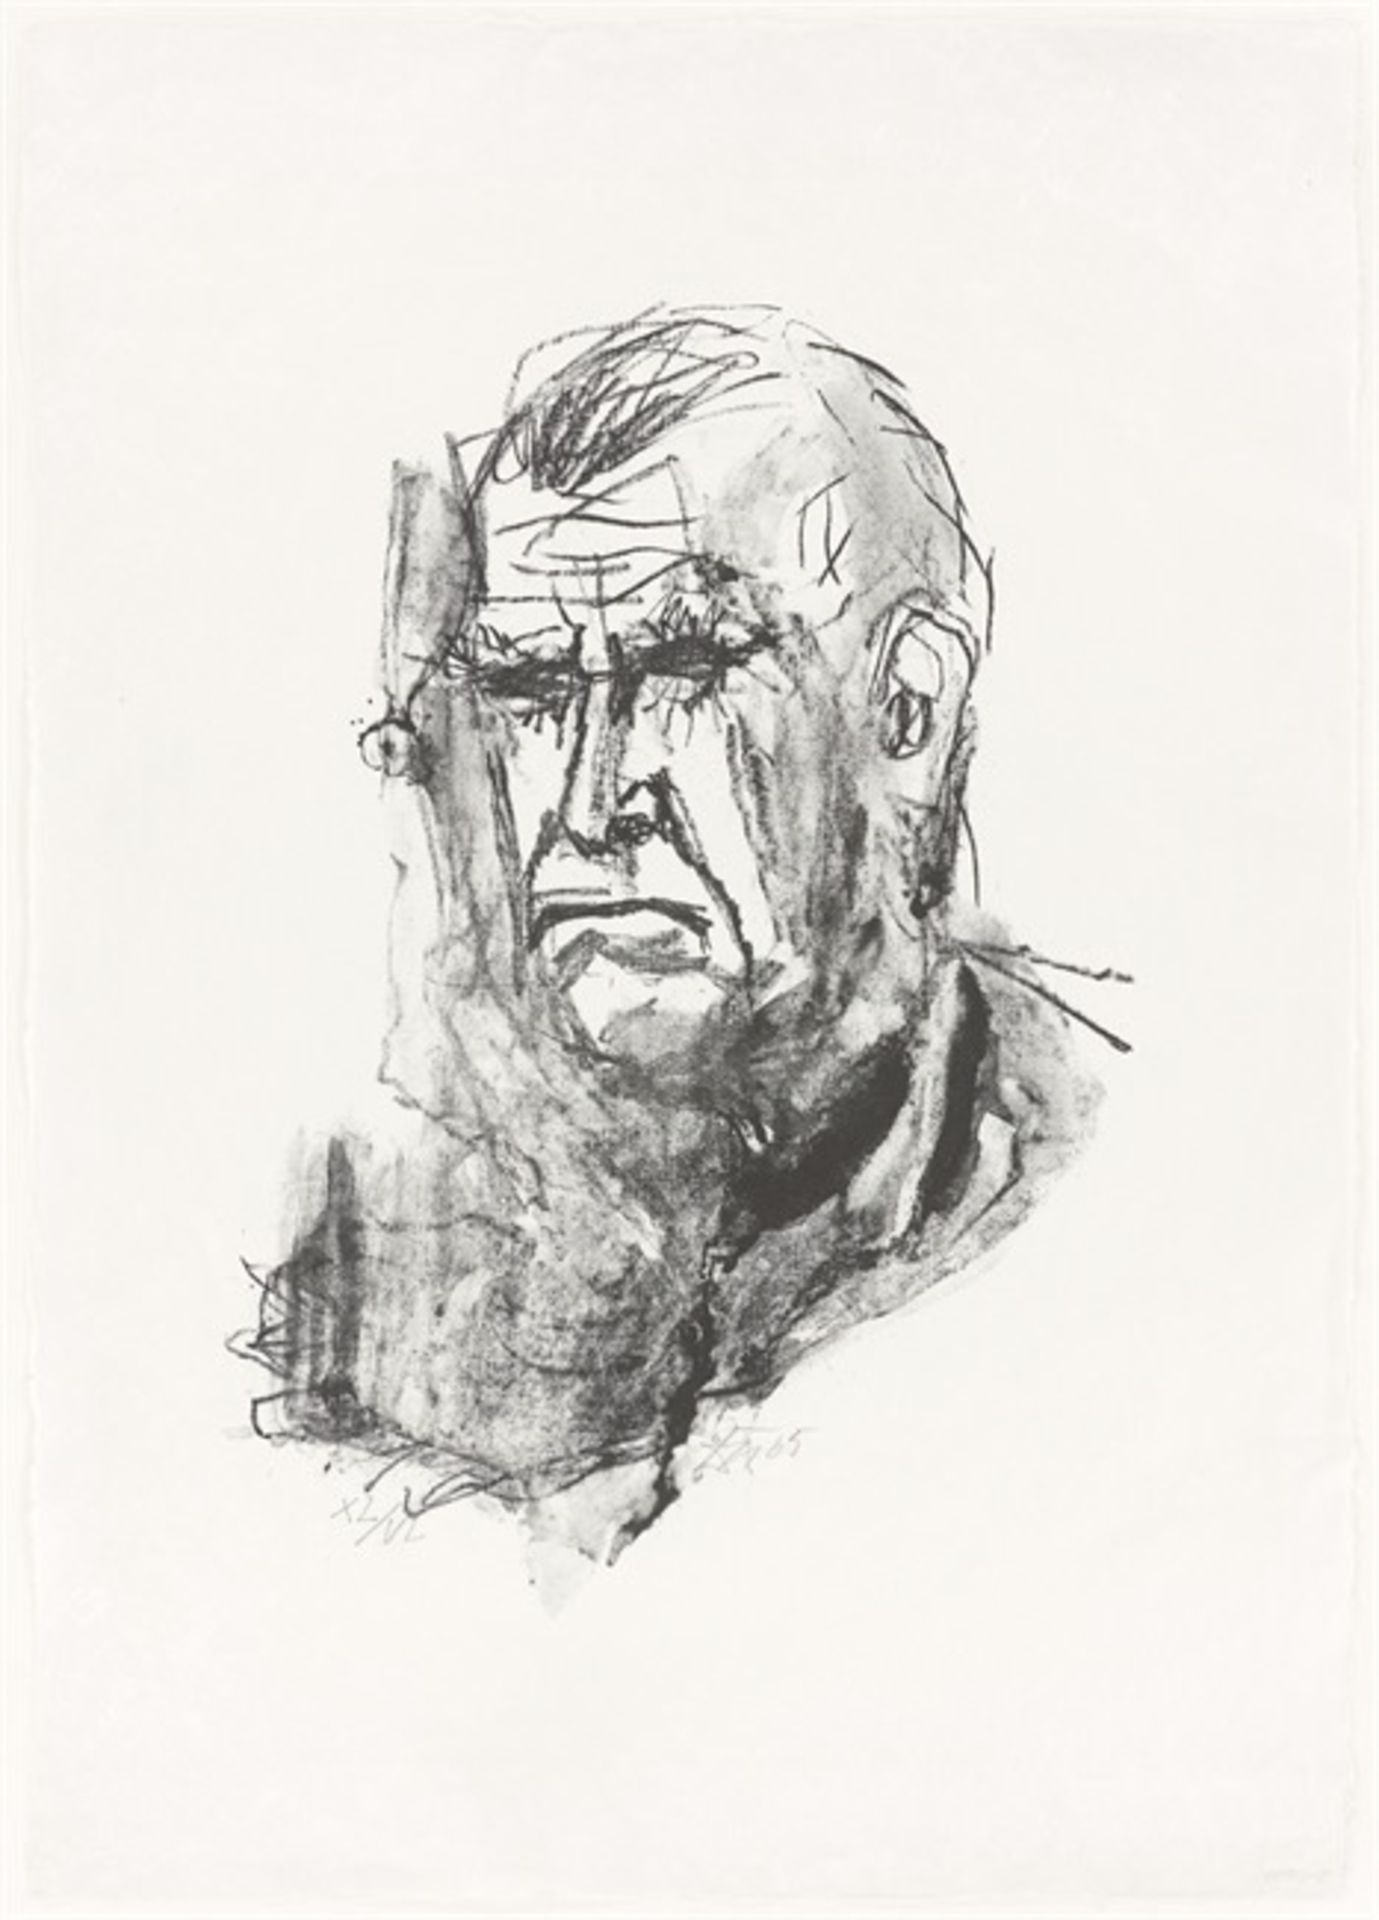 """Otto Dix. """"Großes Selbstbildnis"""". 1965 - Image 2 of 3"""